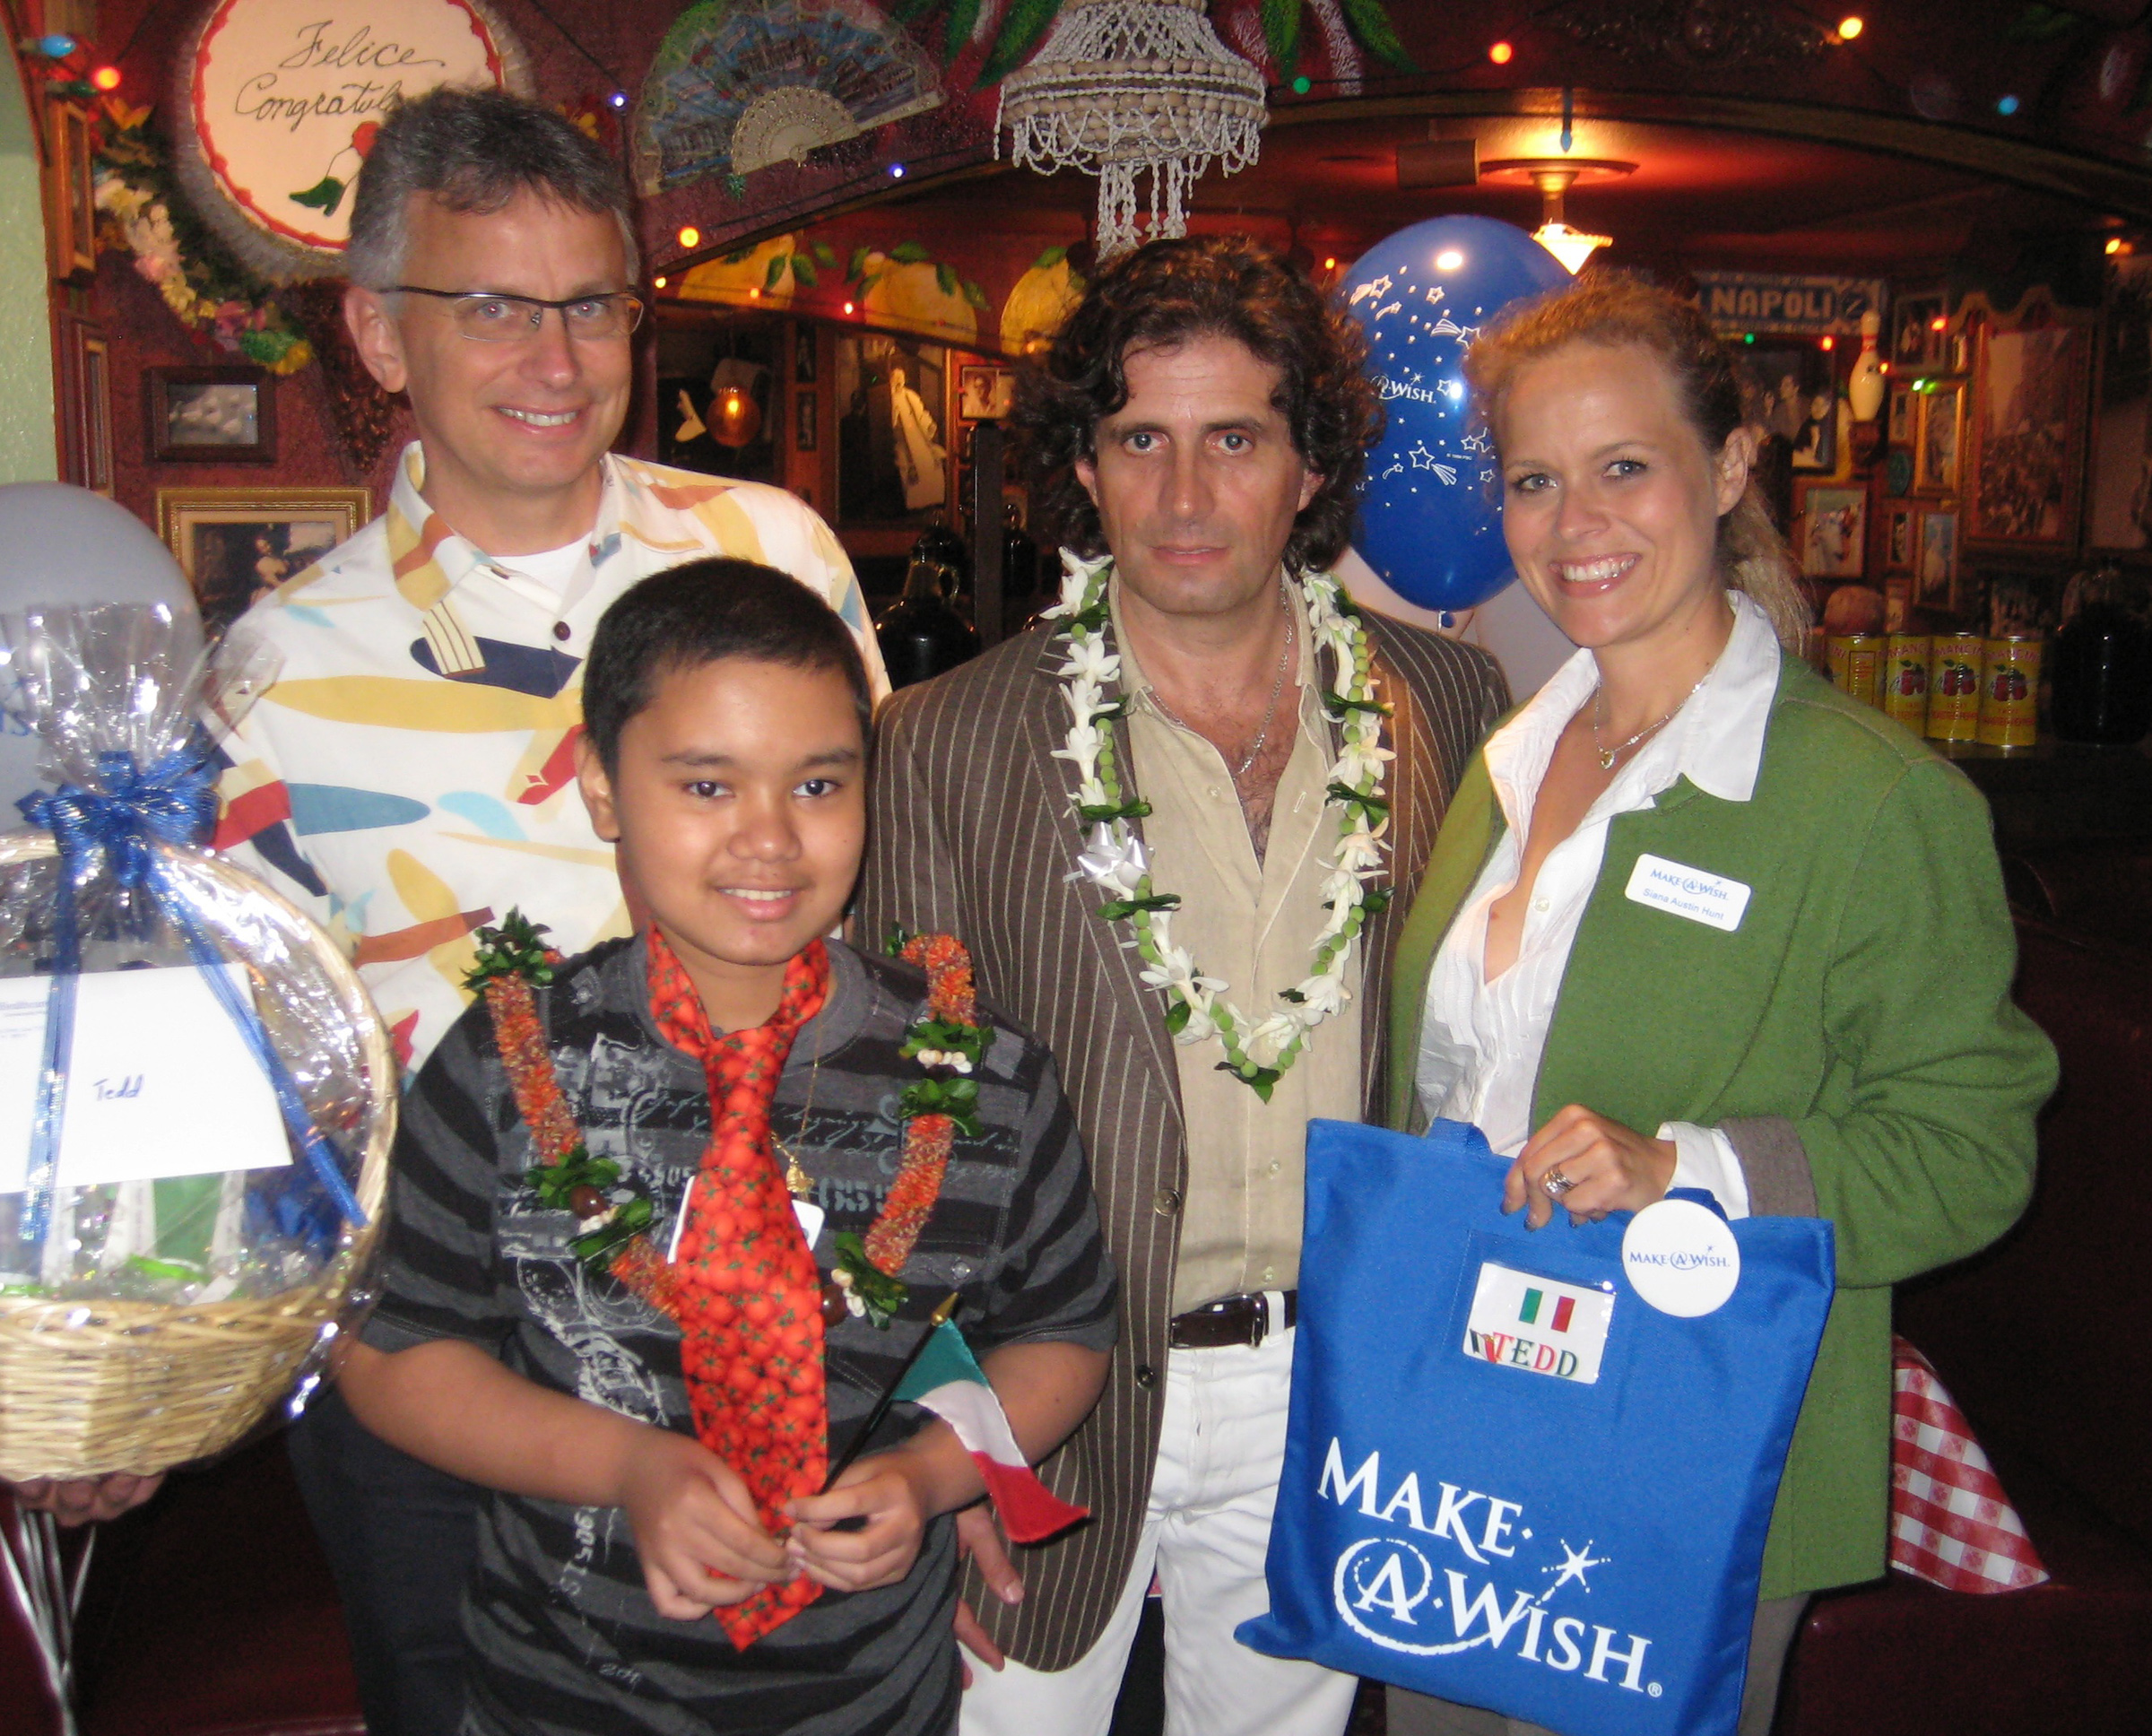 From left, UnitedHealthcare Hawaii Vice President David Heywood, Honorary Consul of Italy Dr. Michele Carbone and Make-a-Wish Hawaii executive director Siana Hunt presented 10-year-old Tedd of Honolulu with gifts at a send-off party at Buca di Beppo.